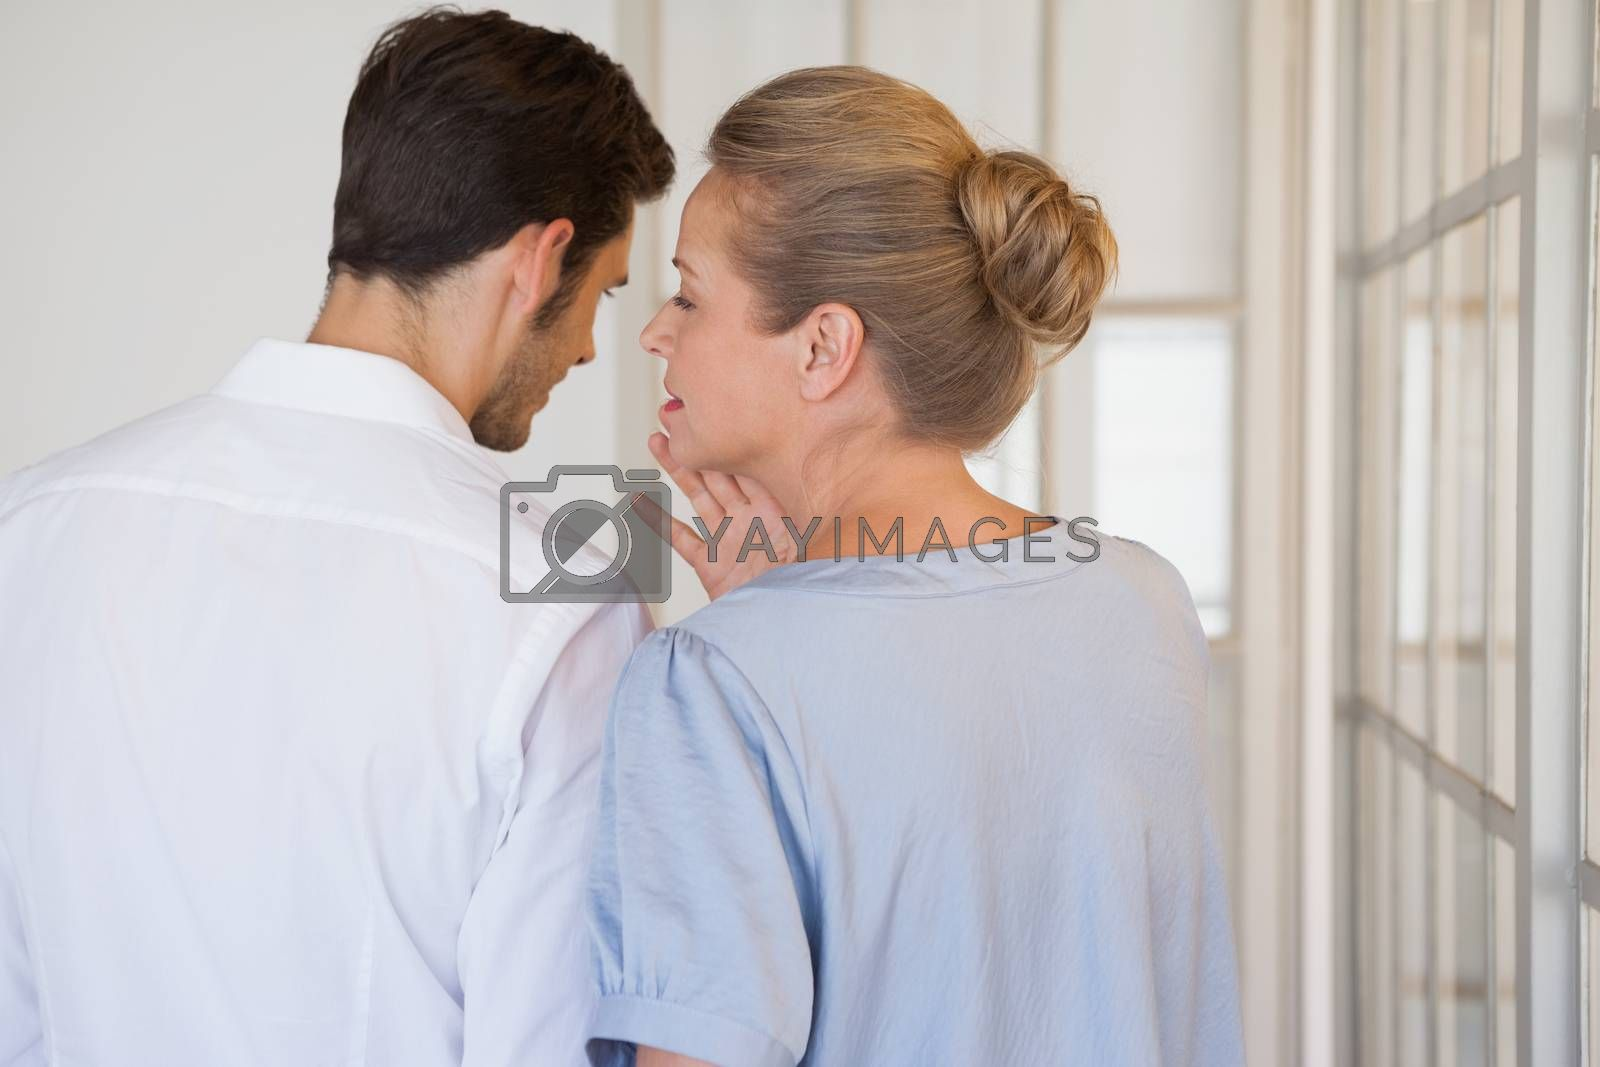 Royalty free image of Casual business people gossiping together by Wavebreakmedia